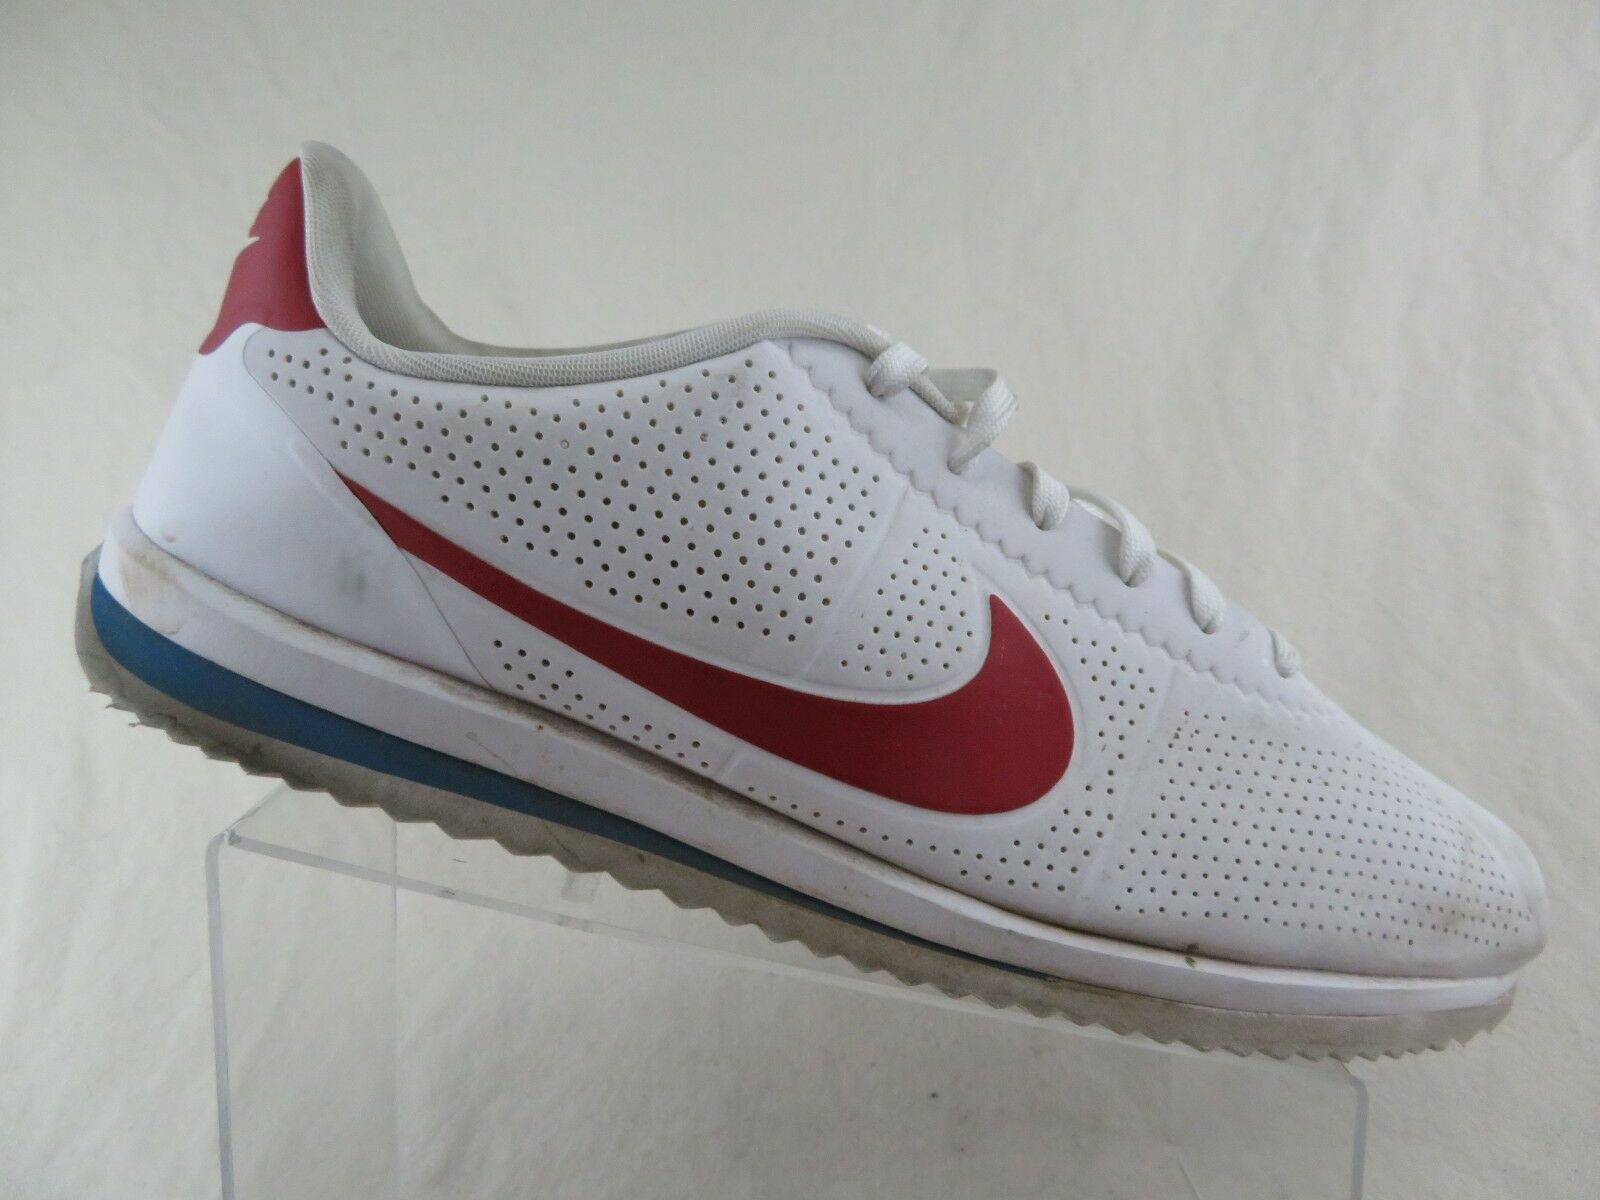 NIKE Cortez Ultra Forest Gump White Red bluee Sz 14 Men Athletic shoes